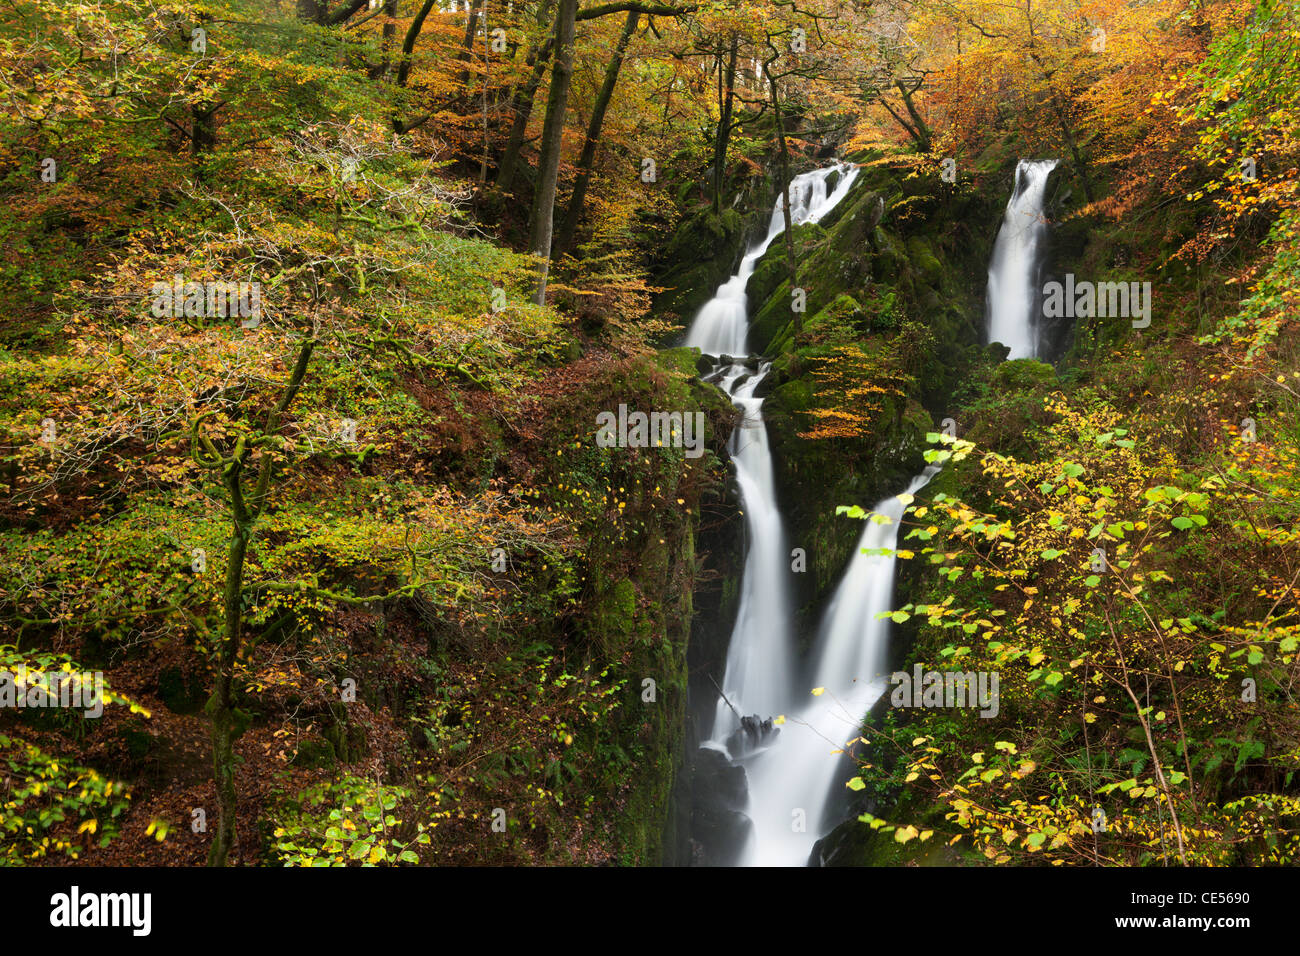 Stock Ghyll Force waterfall surrounded by autumn foliage, Ambleside, Lake District, Cumbria, England. Autumn (November) - Stock Image